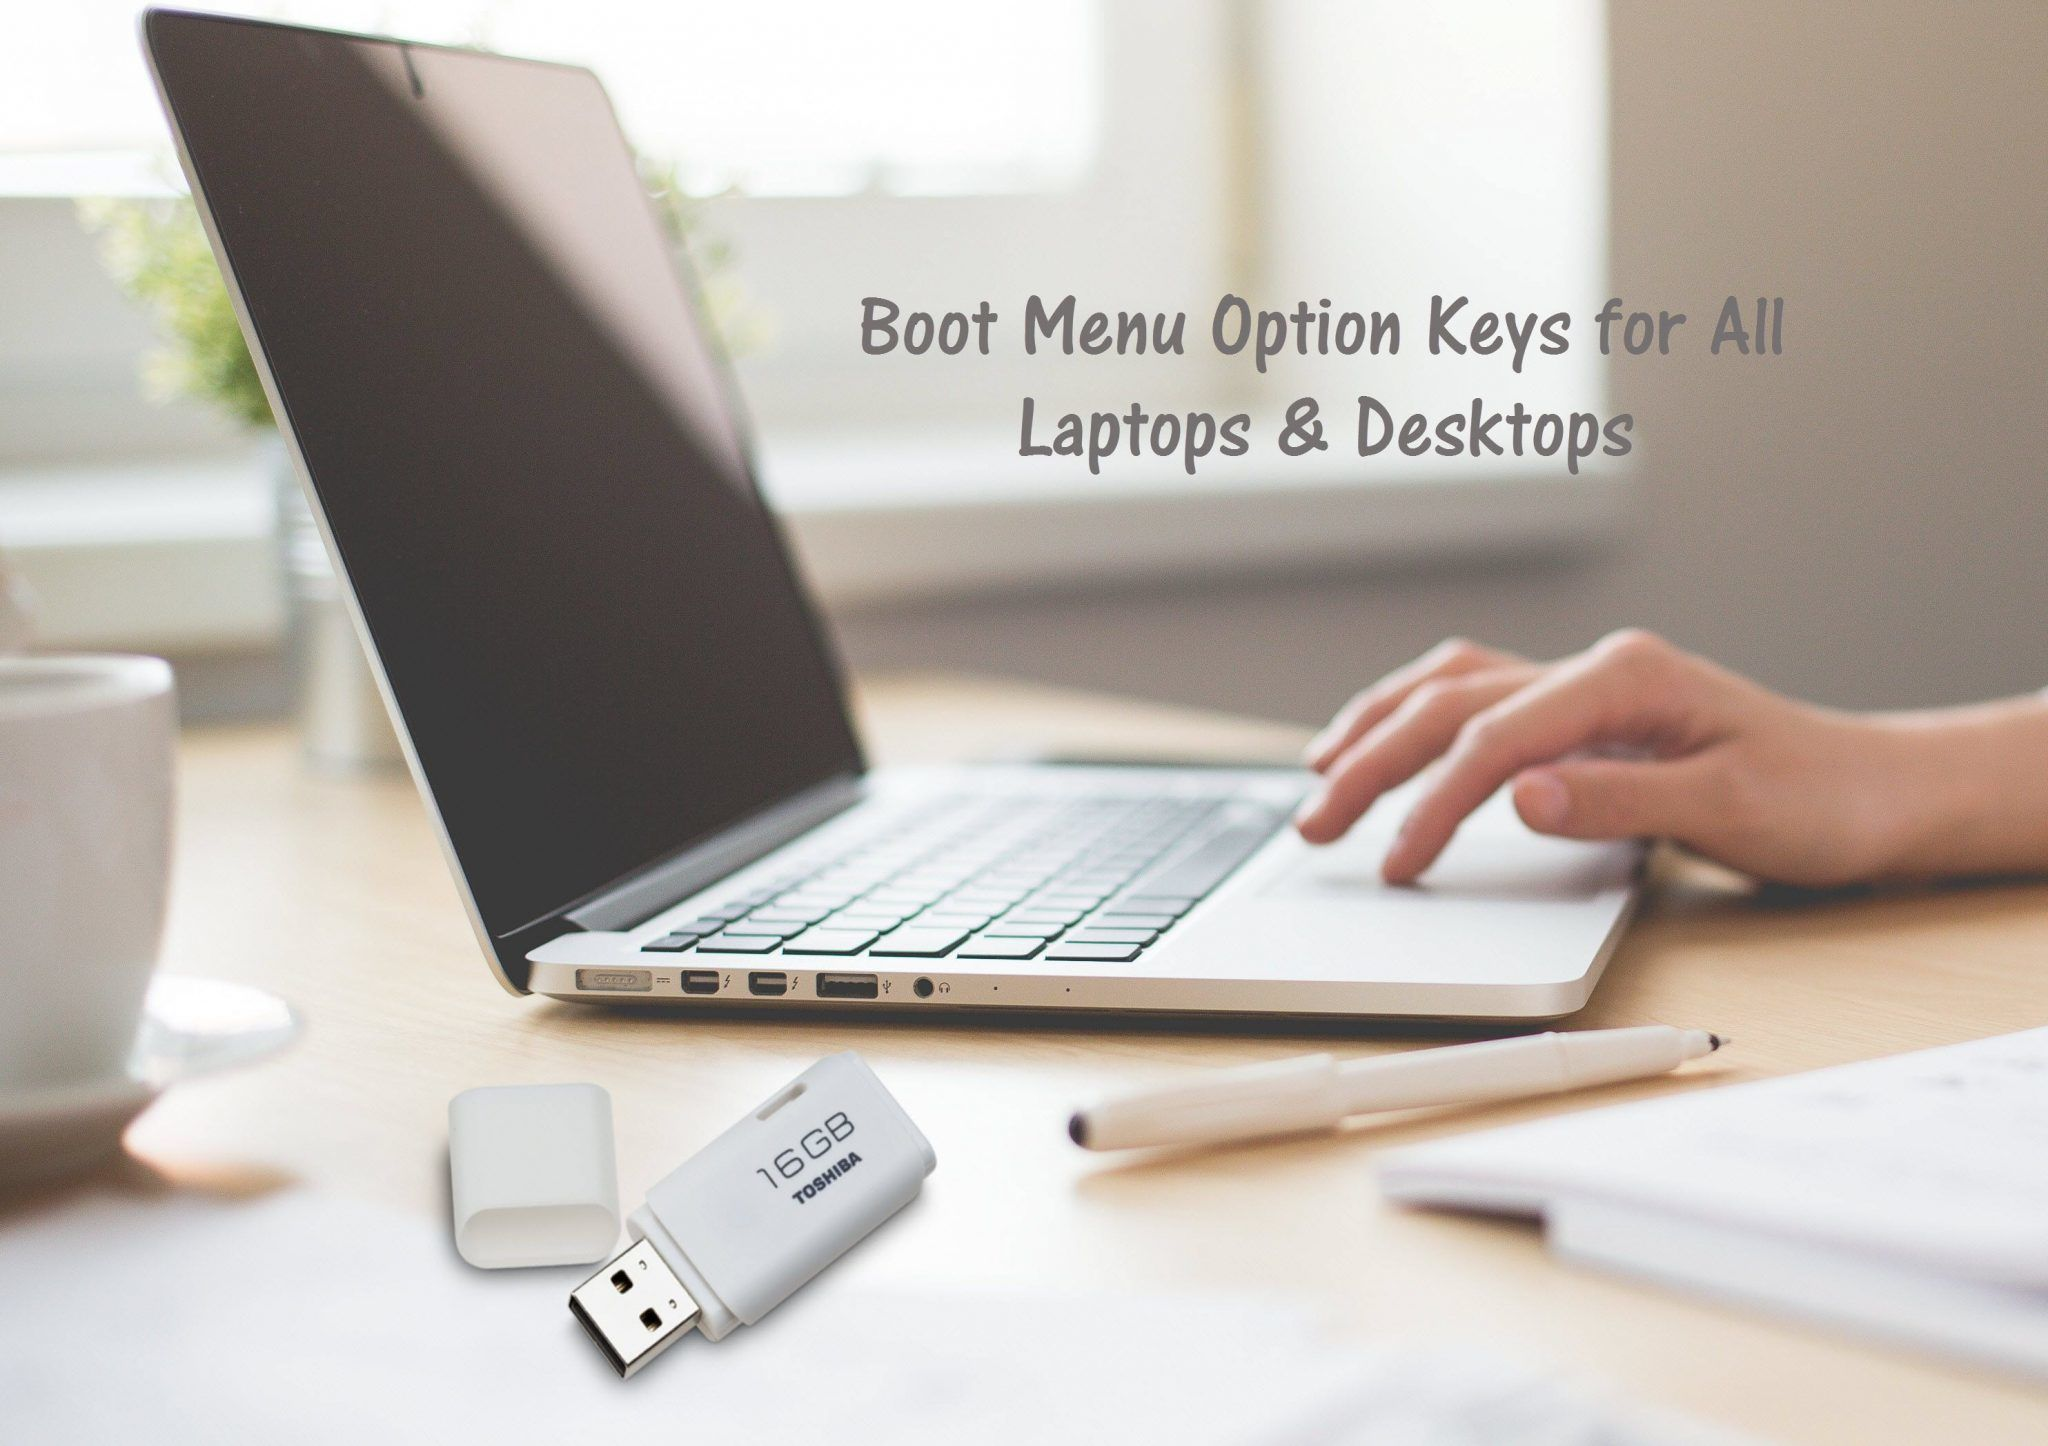 how to format sony vaio laptop windows 7 using assist button